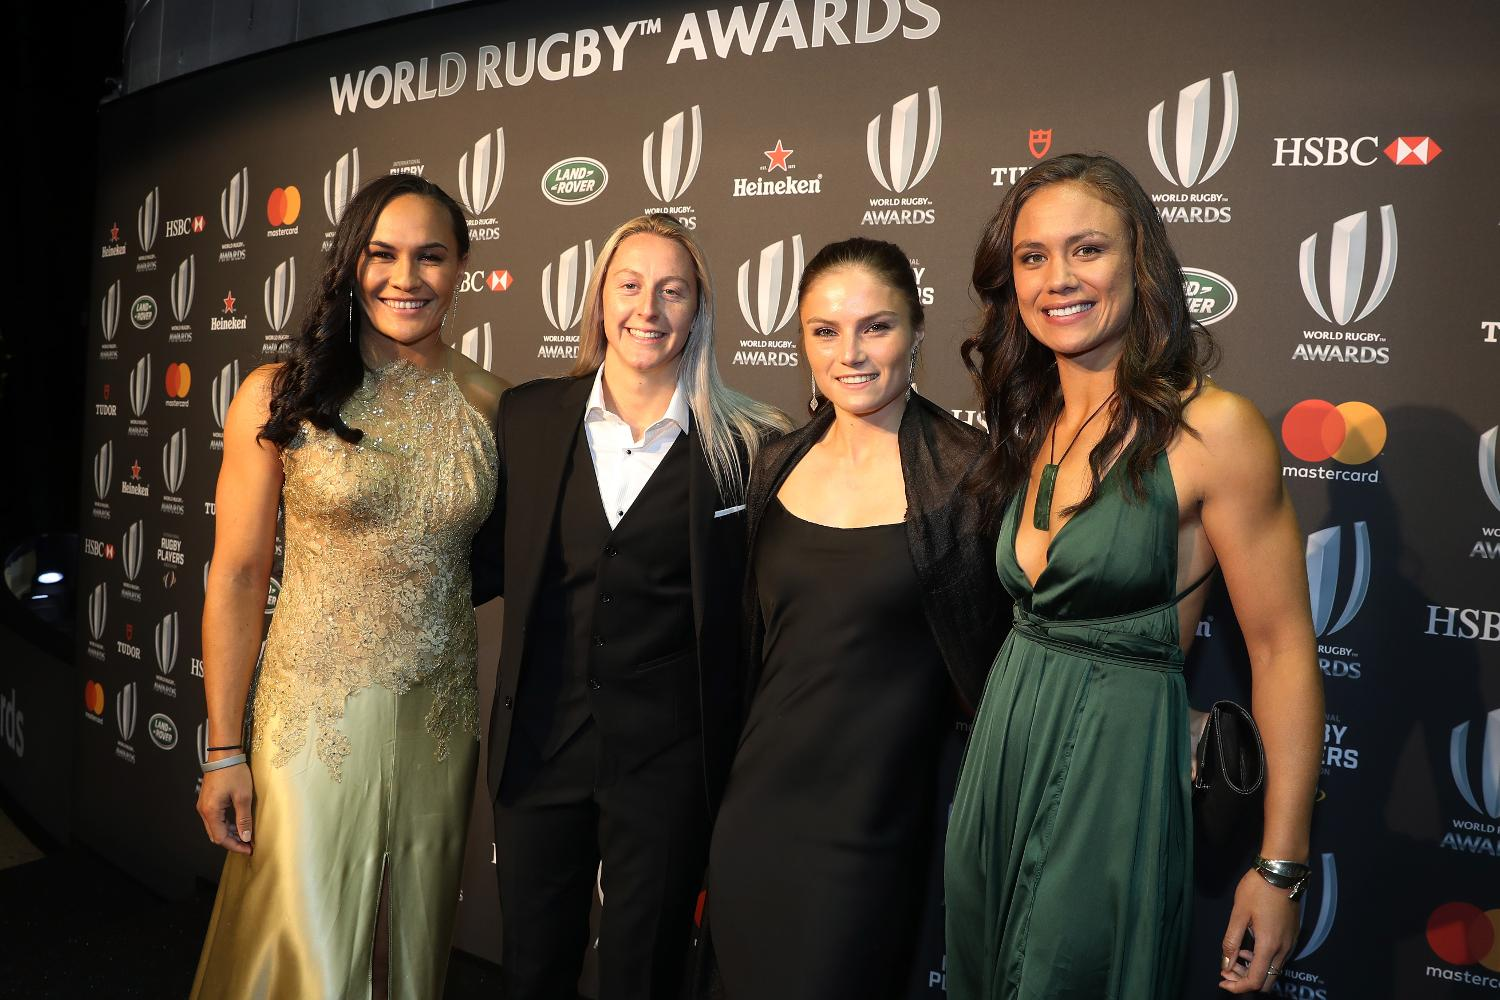 Black Ferns attend the World Rugby Awards 2017